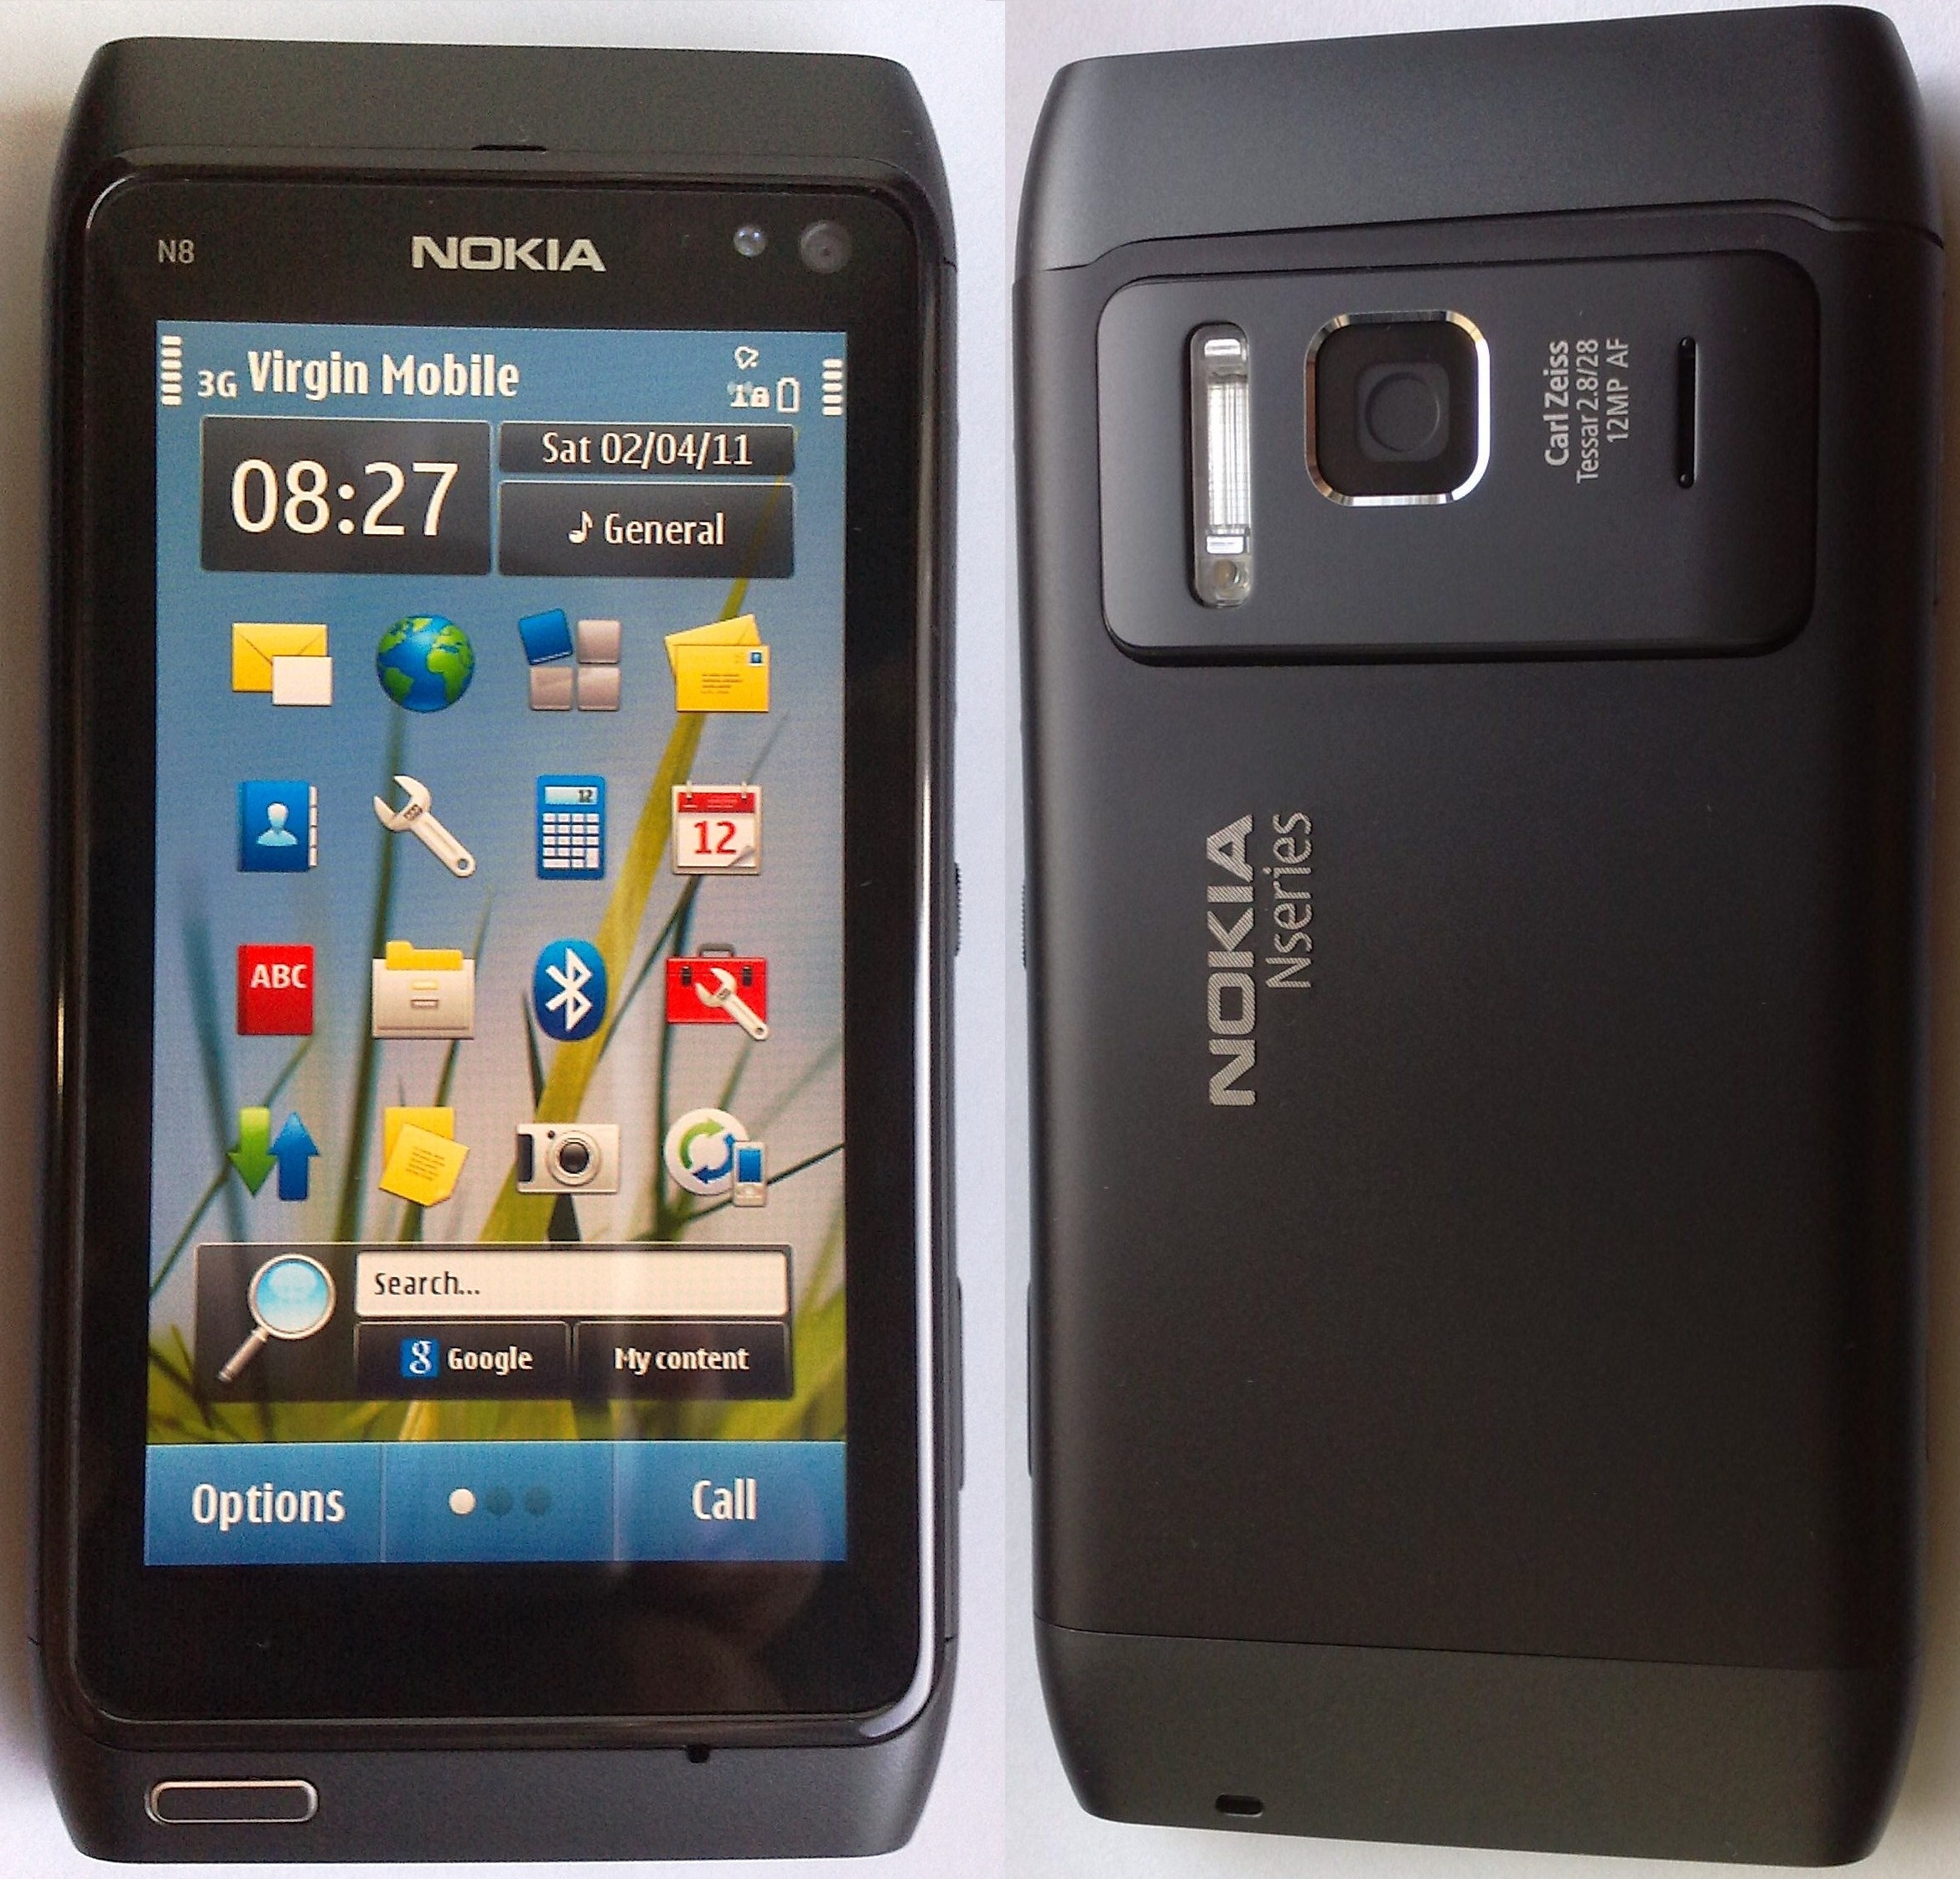 File:Nokia N8 (double-sided view).jpg - Wikimedia Commons